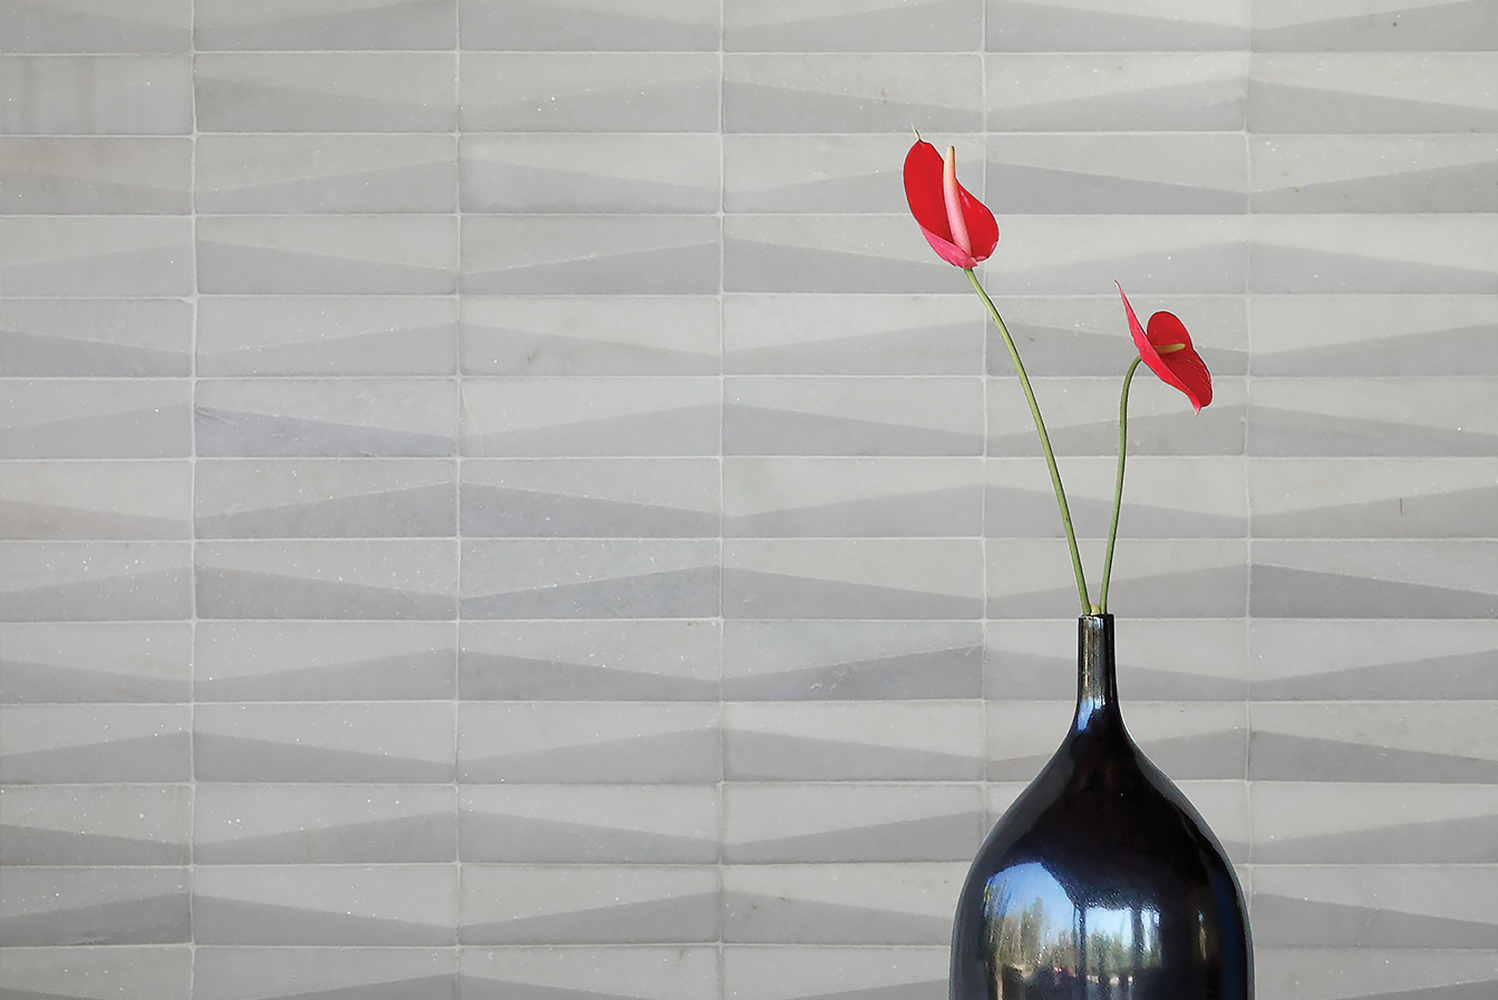 Island Stone introduced the Dunes series of subway tiles, which were sculpted with an offset angled surface, forming a flow of connected ridges reminiscent of wind-swept sand dunes.